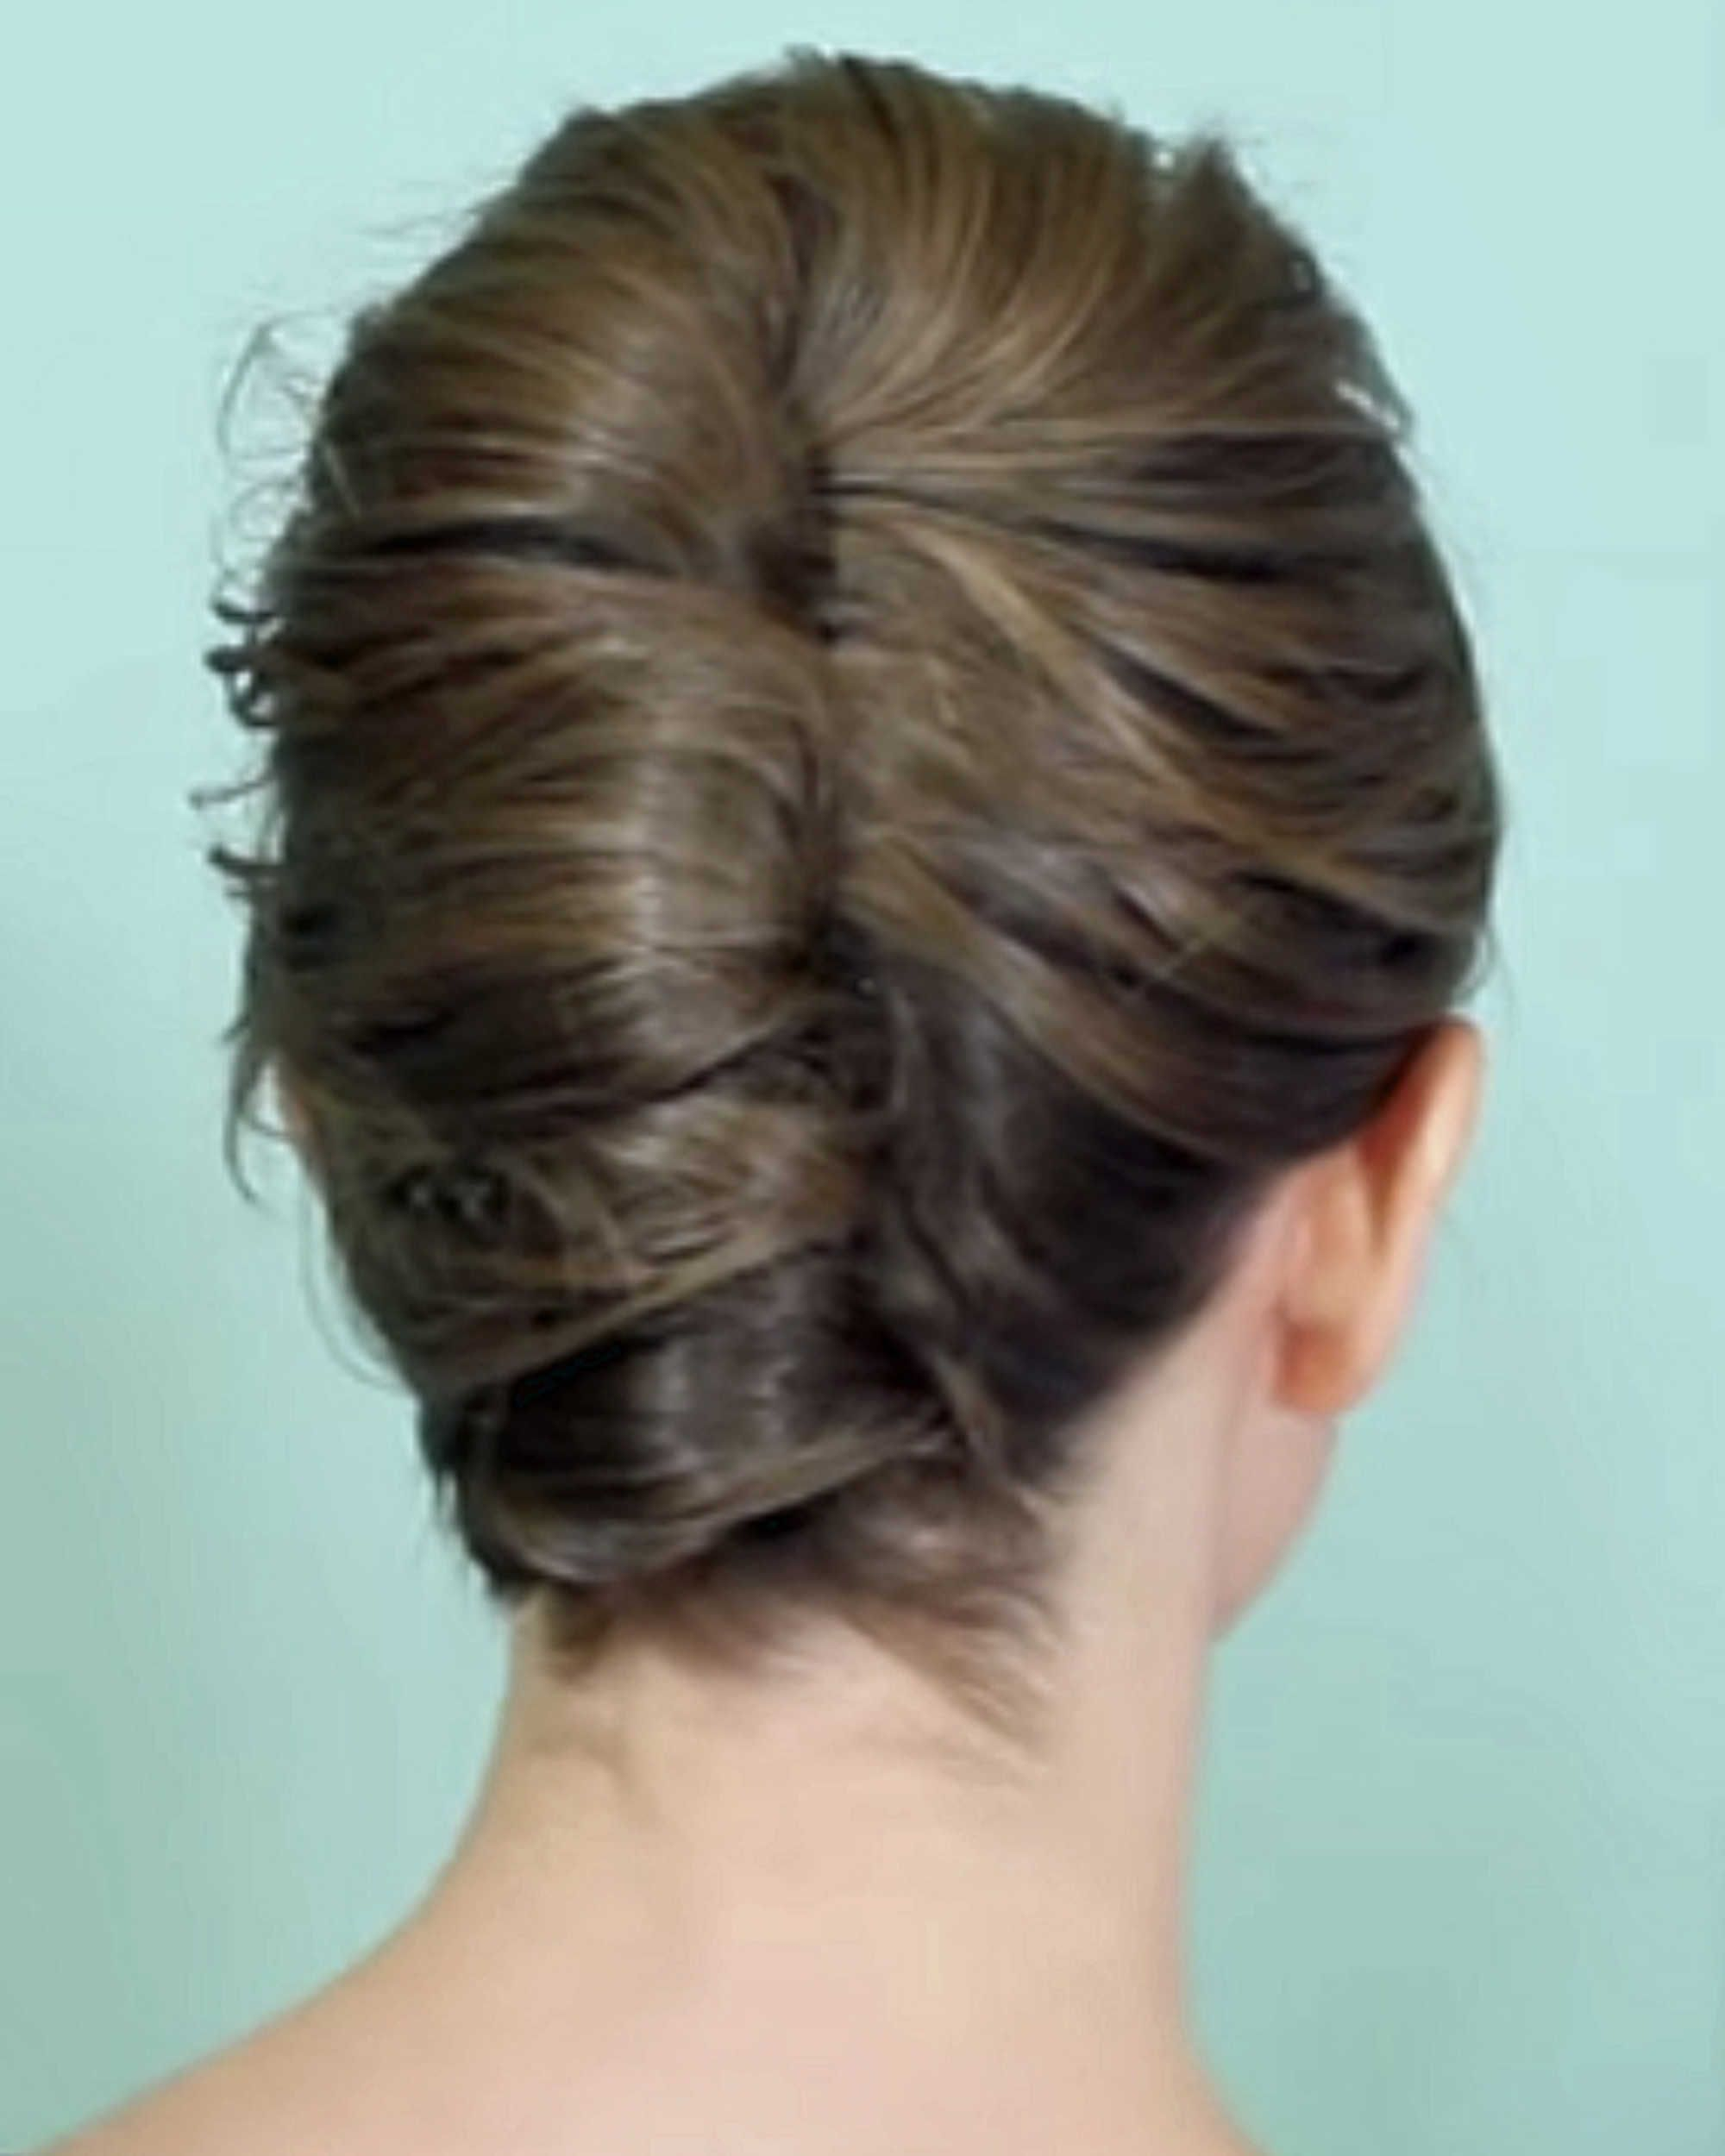 A Simple French Twist for Short Hair